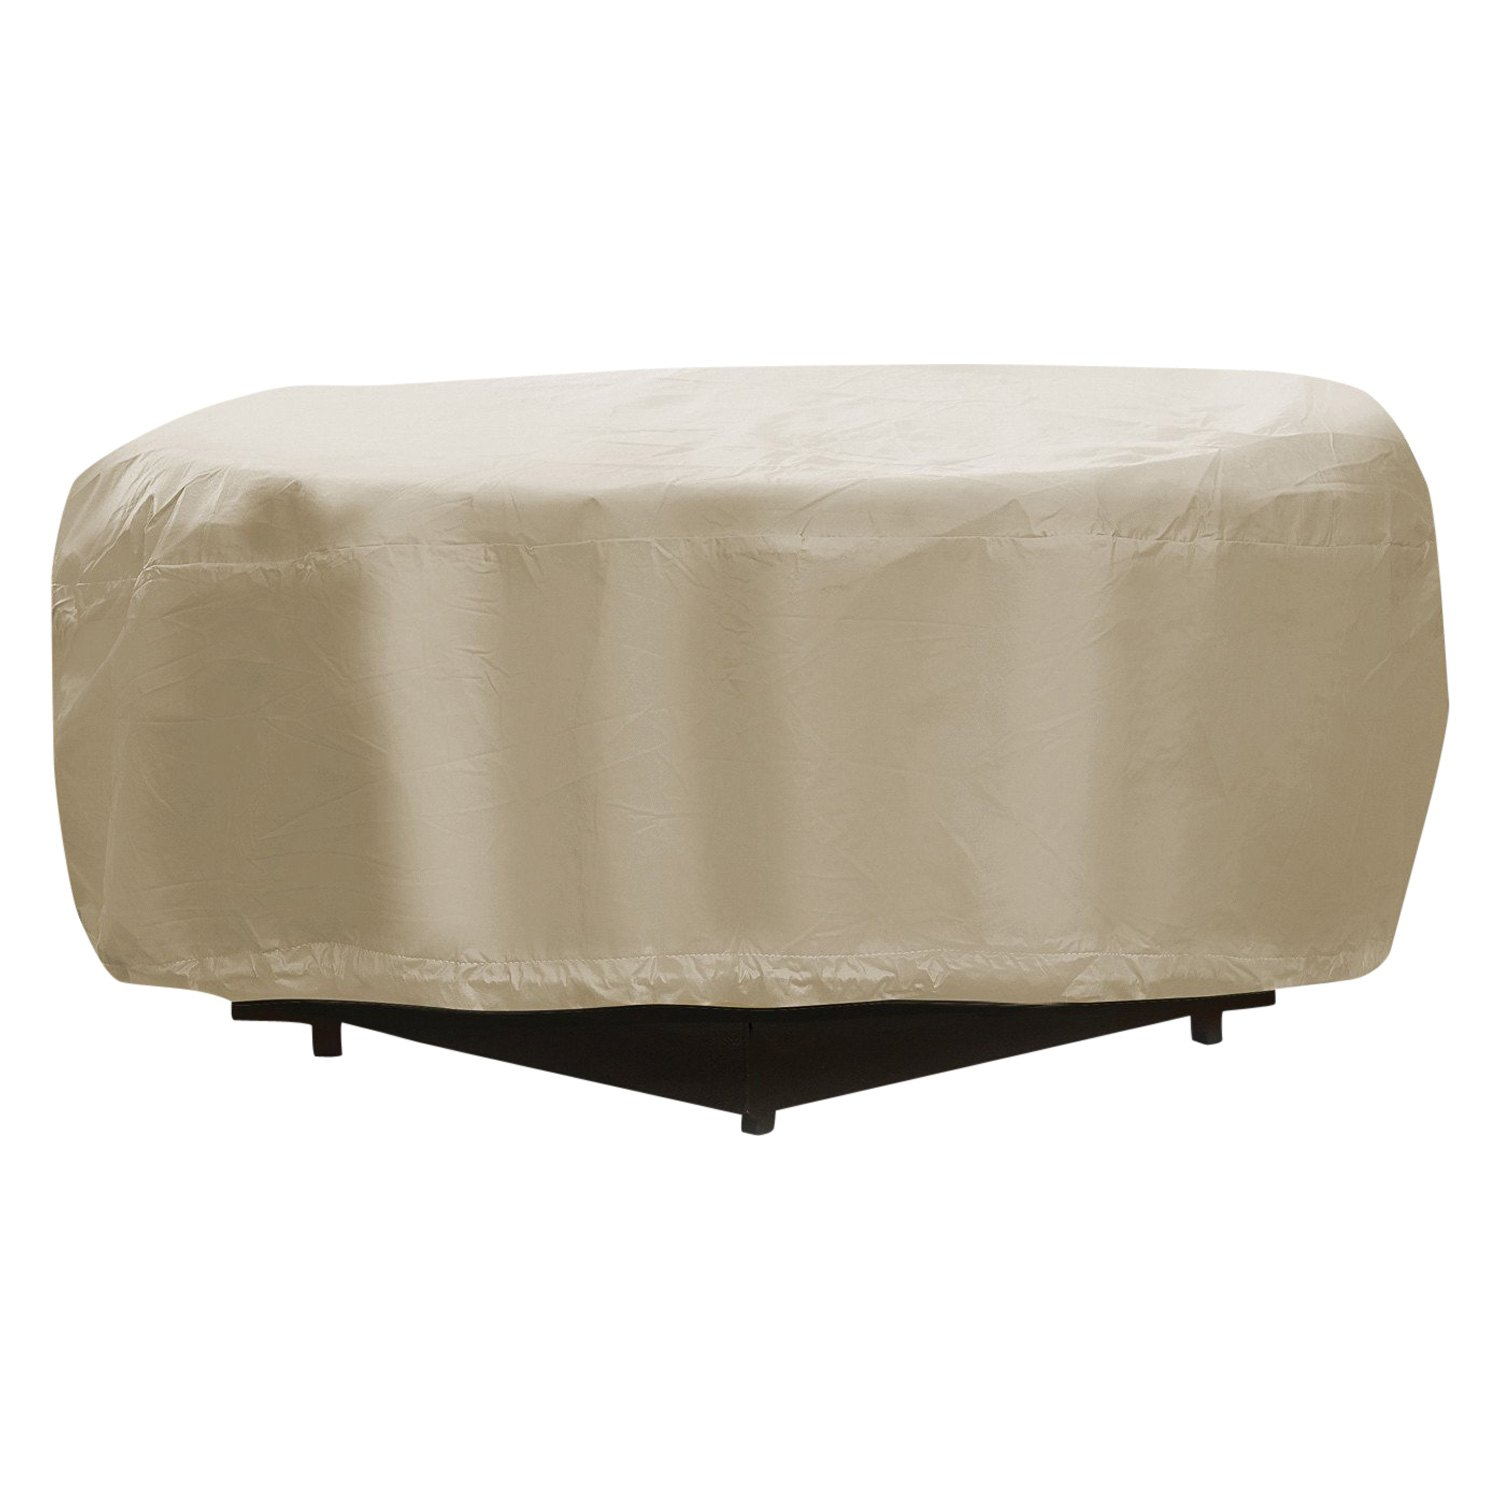 Pci Tan Round Firepit Cover